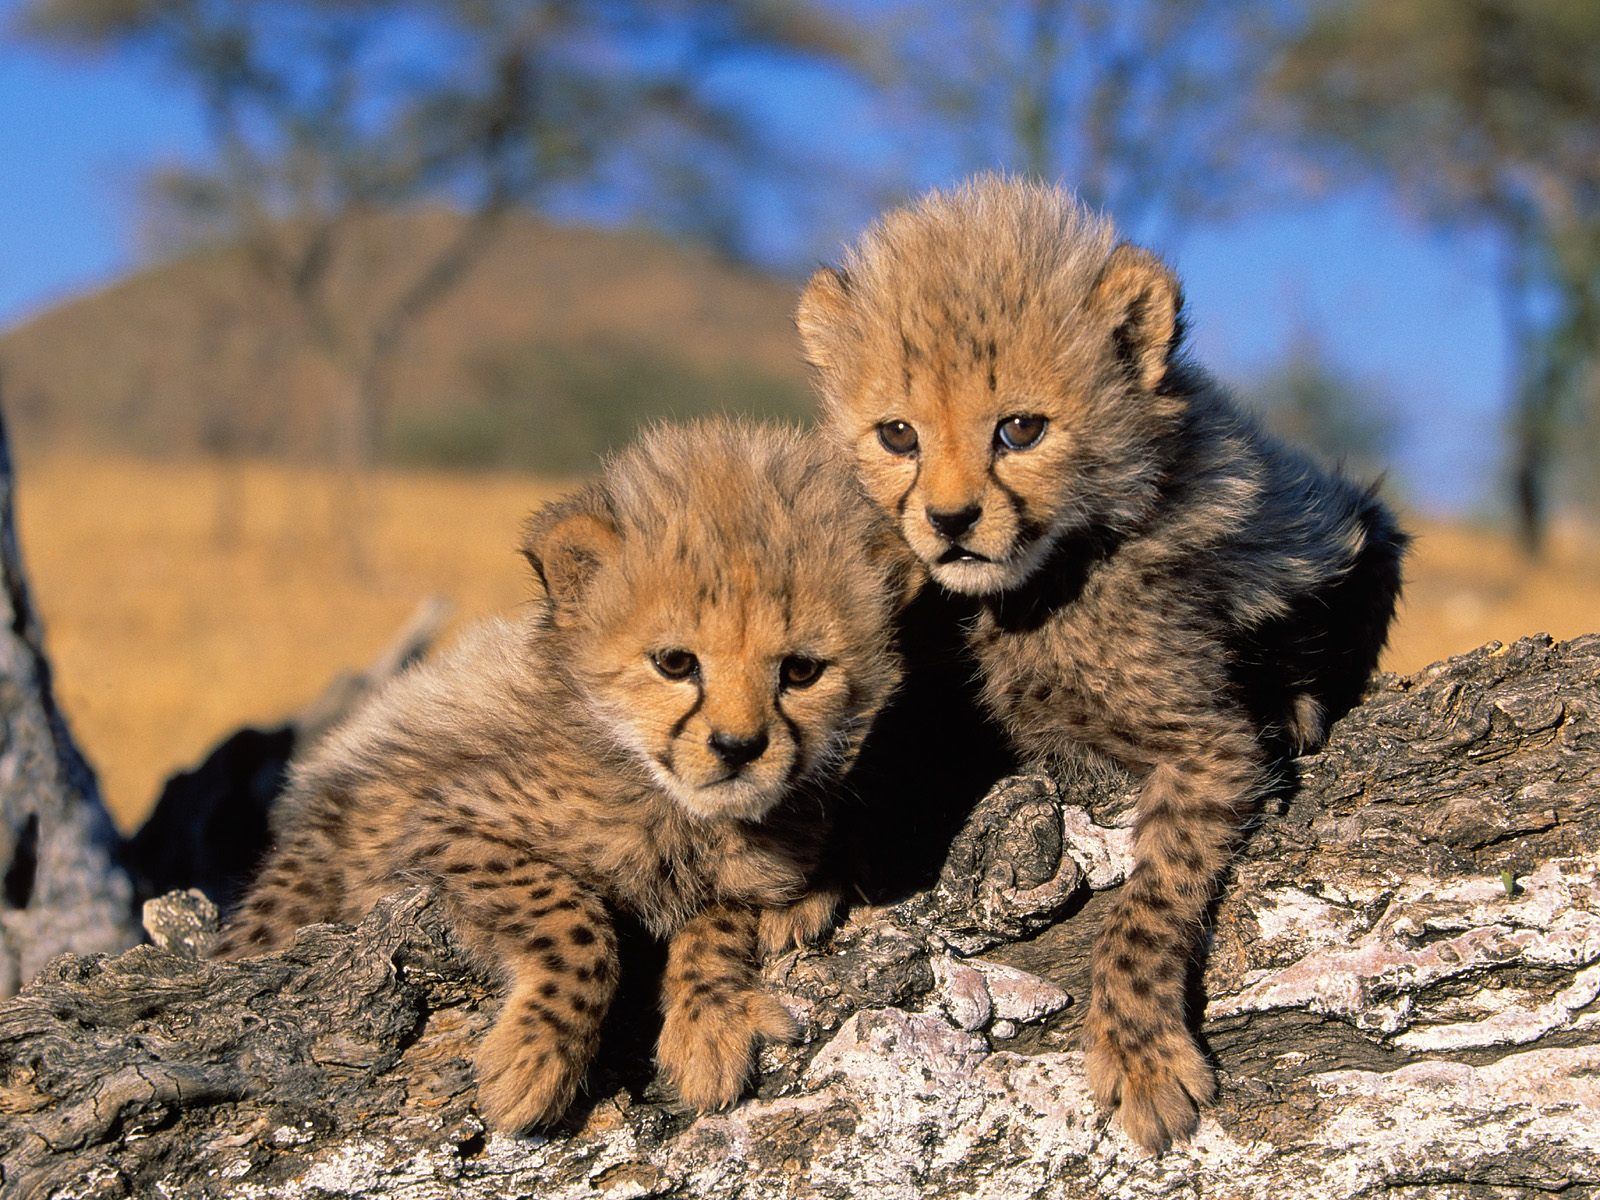 unique animals blogs: cheetahs cubs, tigers cubbs pics - cub photos